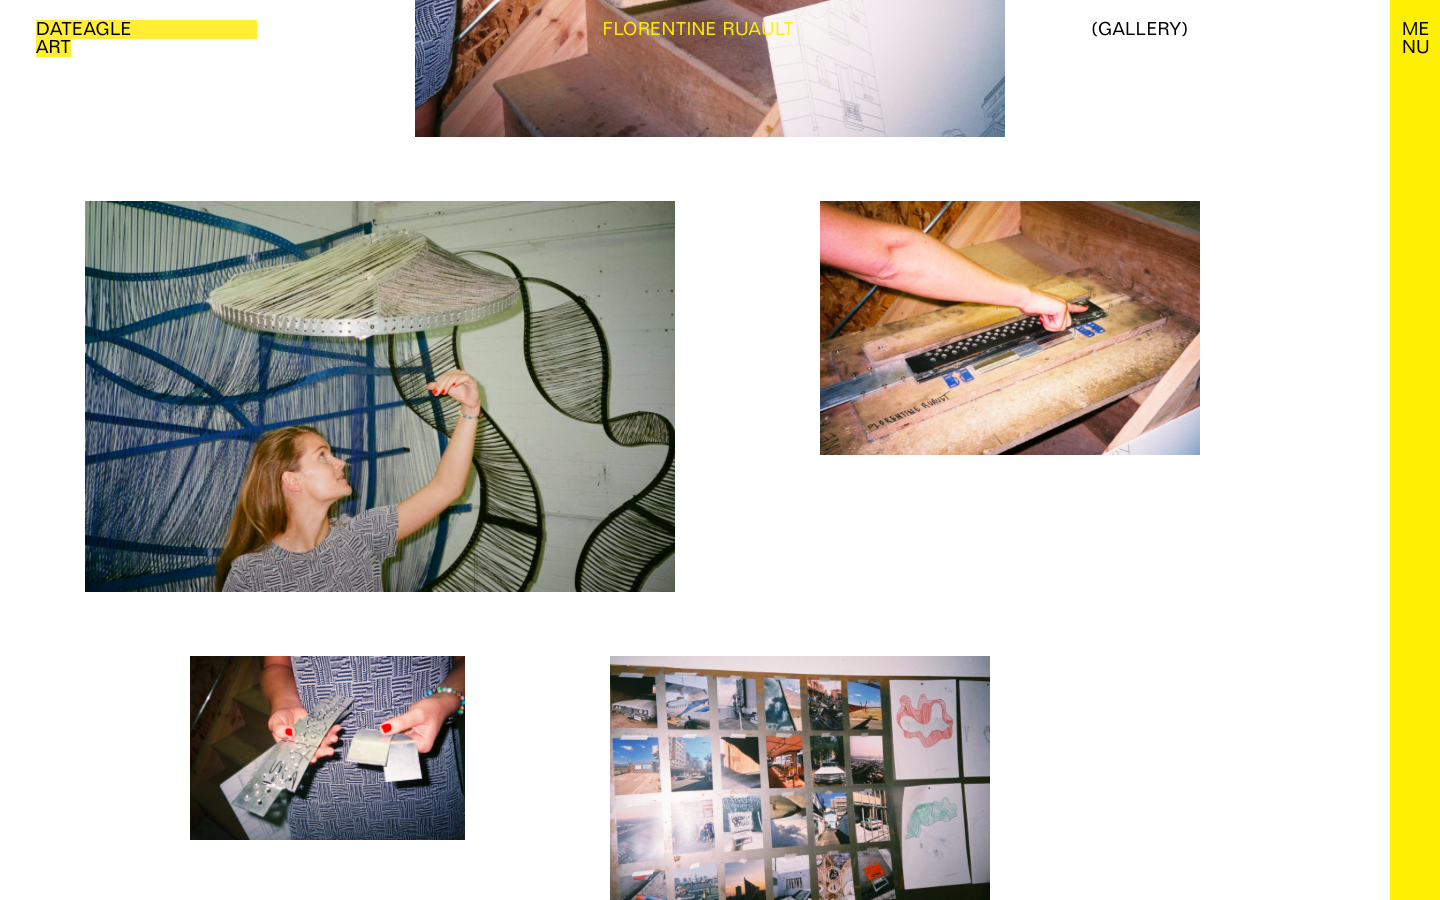 STUDIO VISIT BY DATEAGLE ART  Interview by Laura Gosney. Photography by Vanessa Murrell